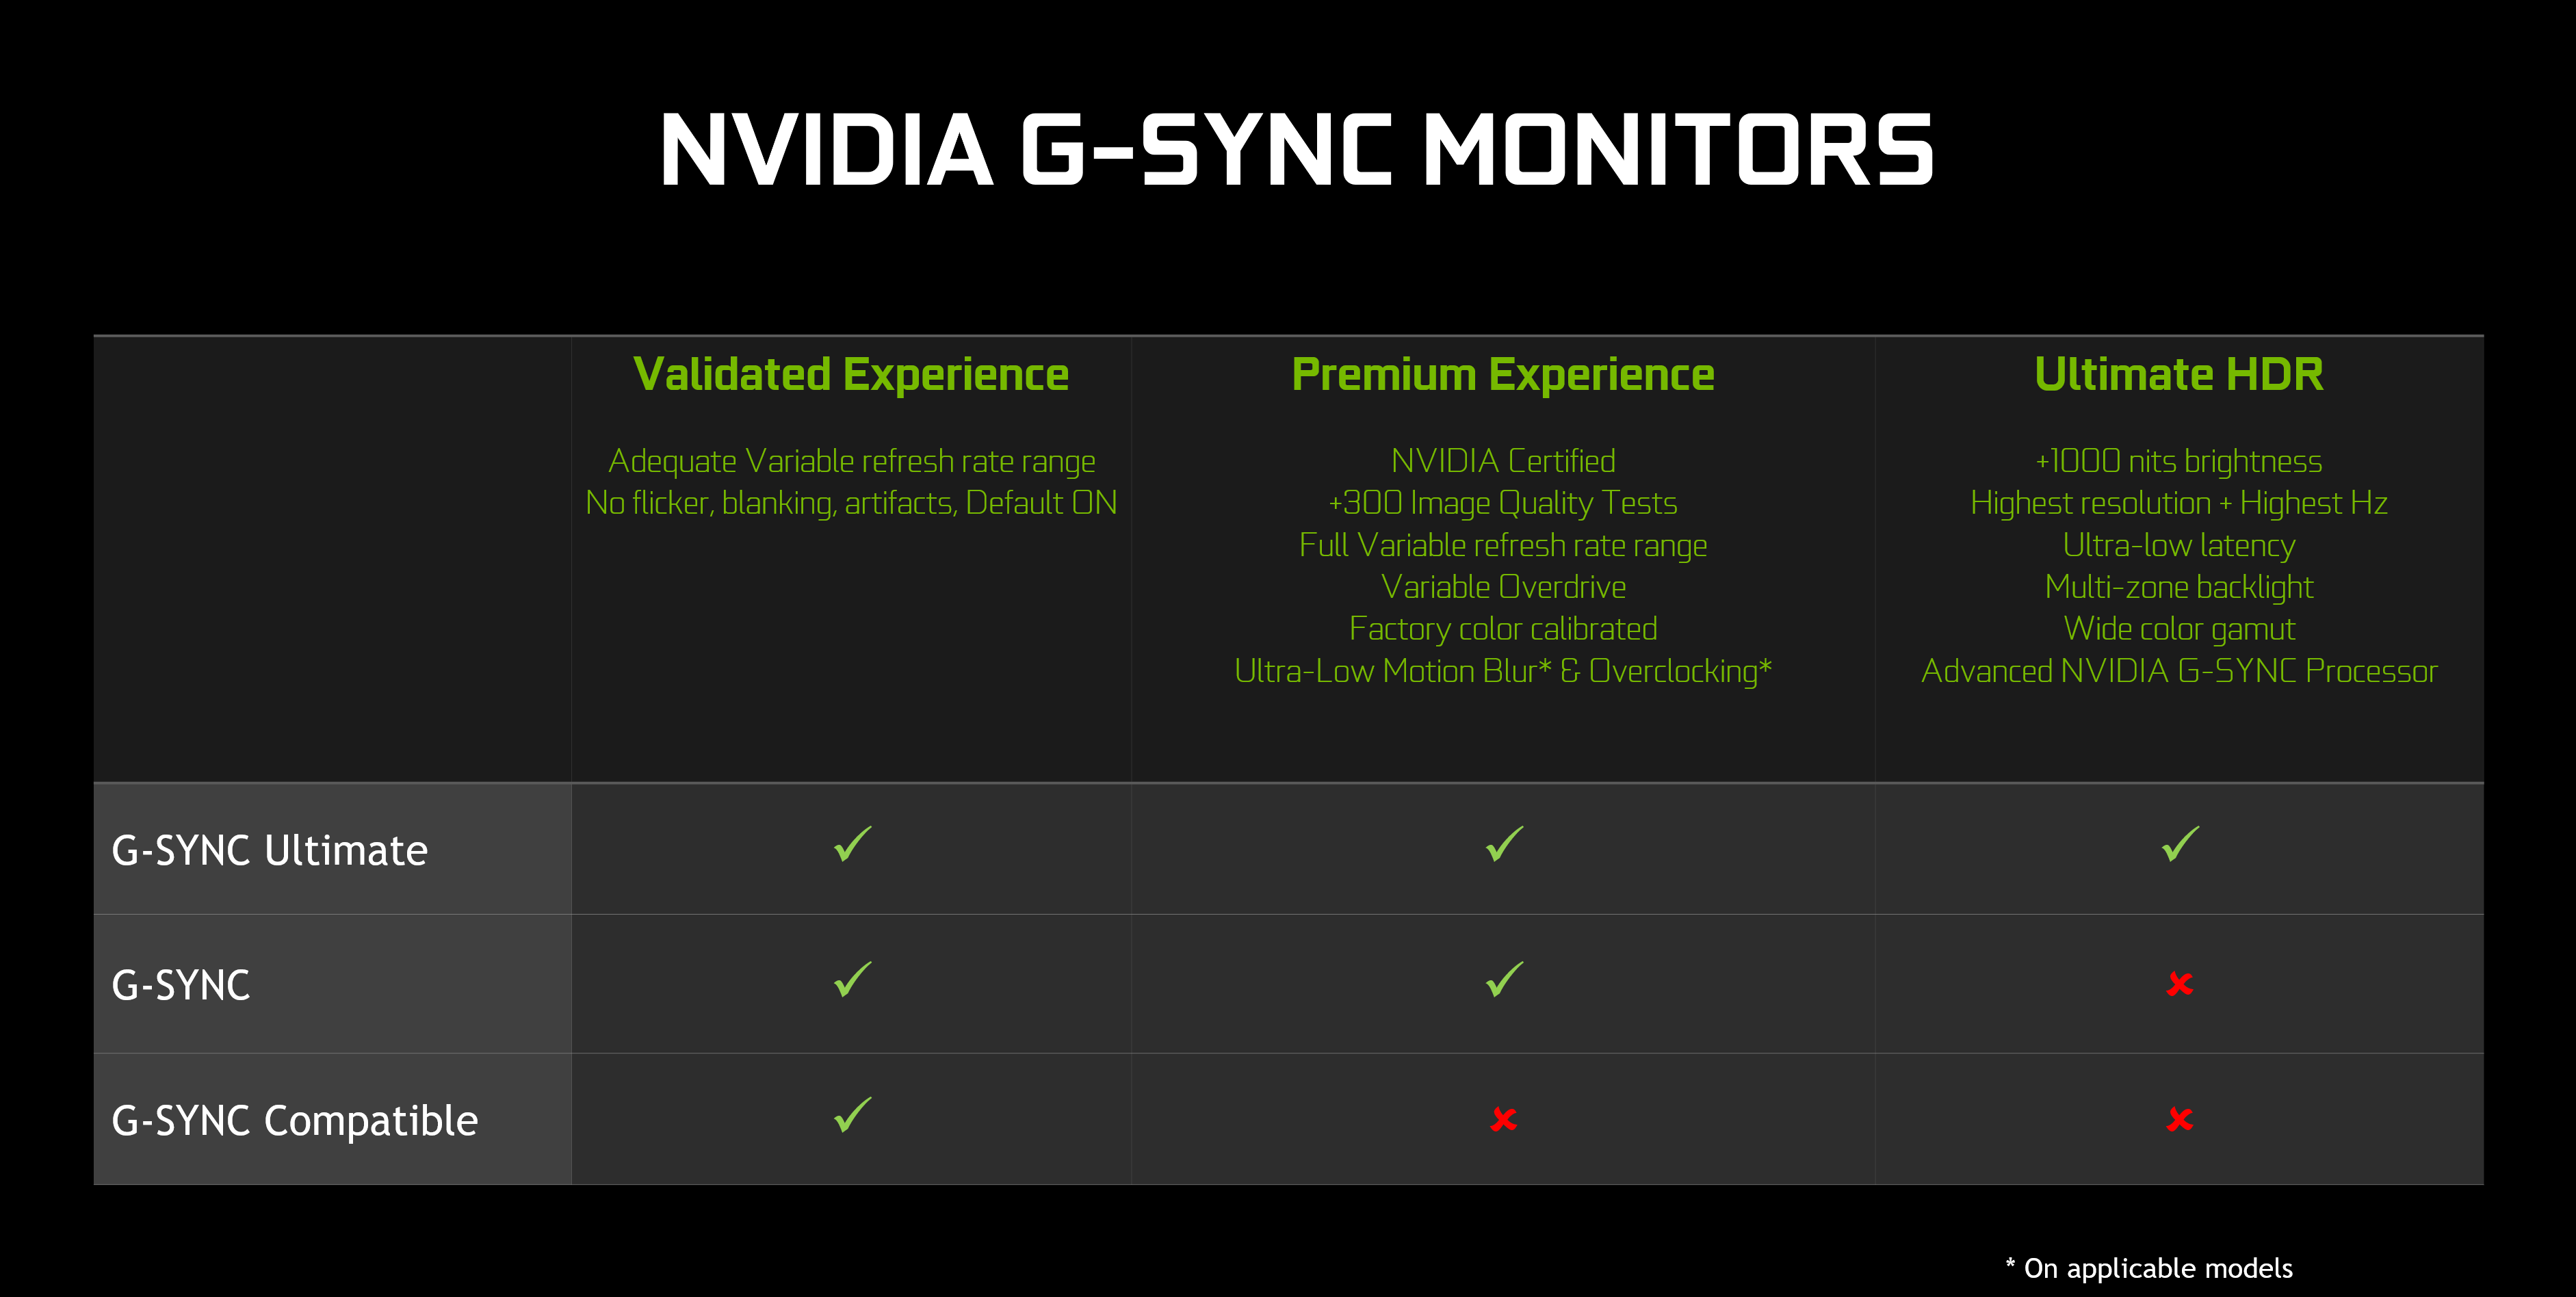 https://images.nvidia.com/content/images/article/more-g-sync-compatible-gaming-monitors-validated/nvidia-g-sync-monitor-stack-comparison.png